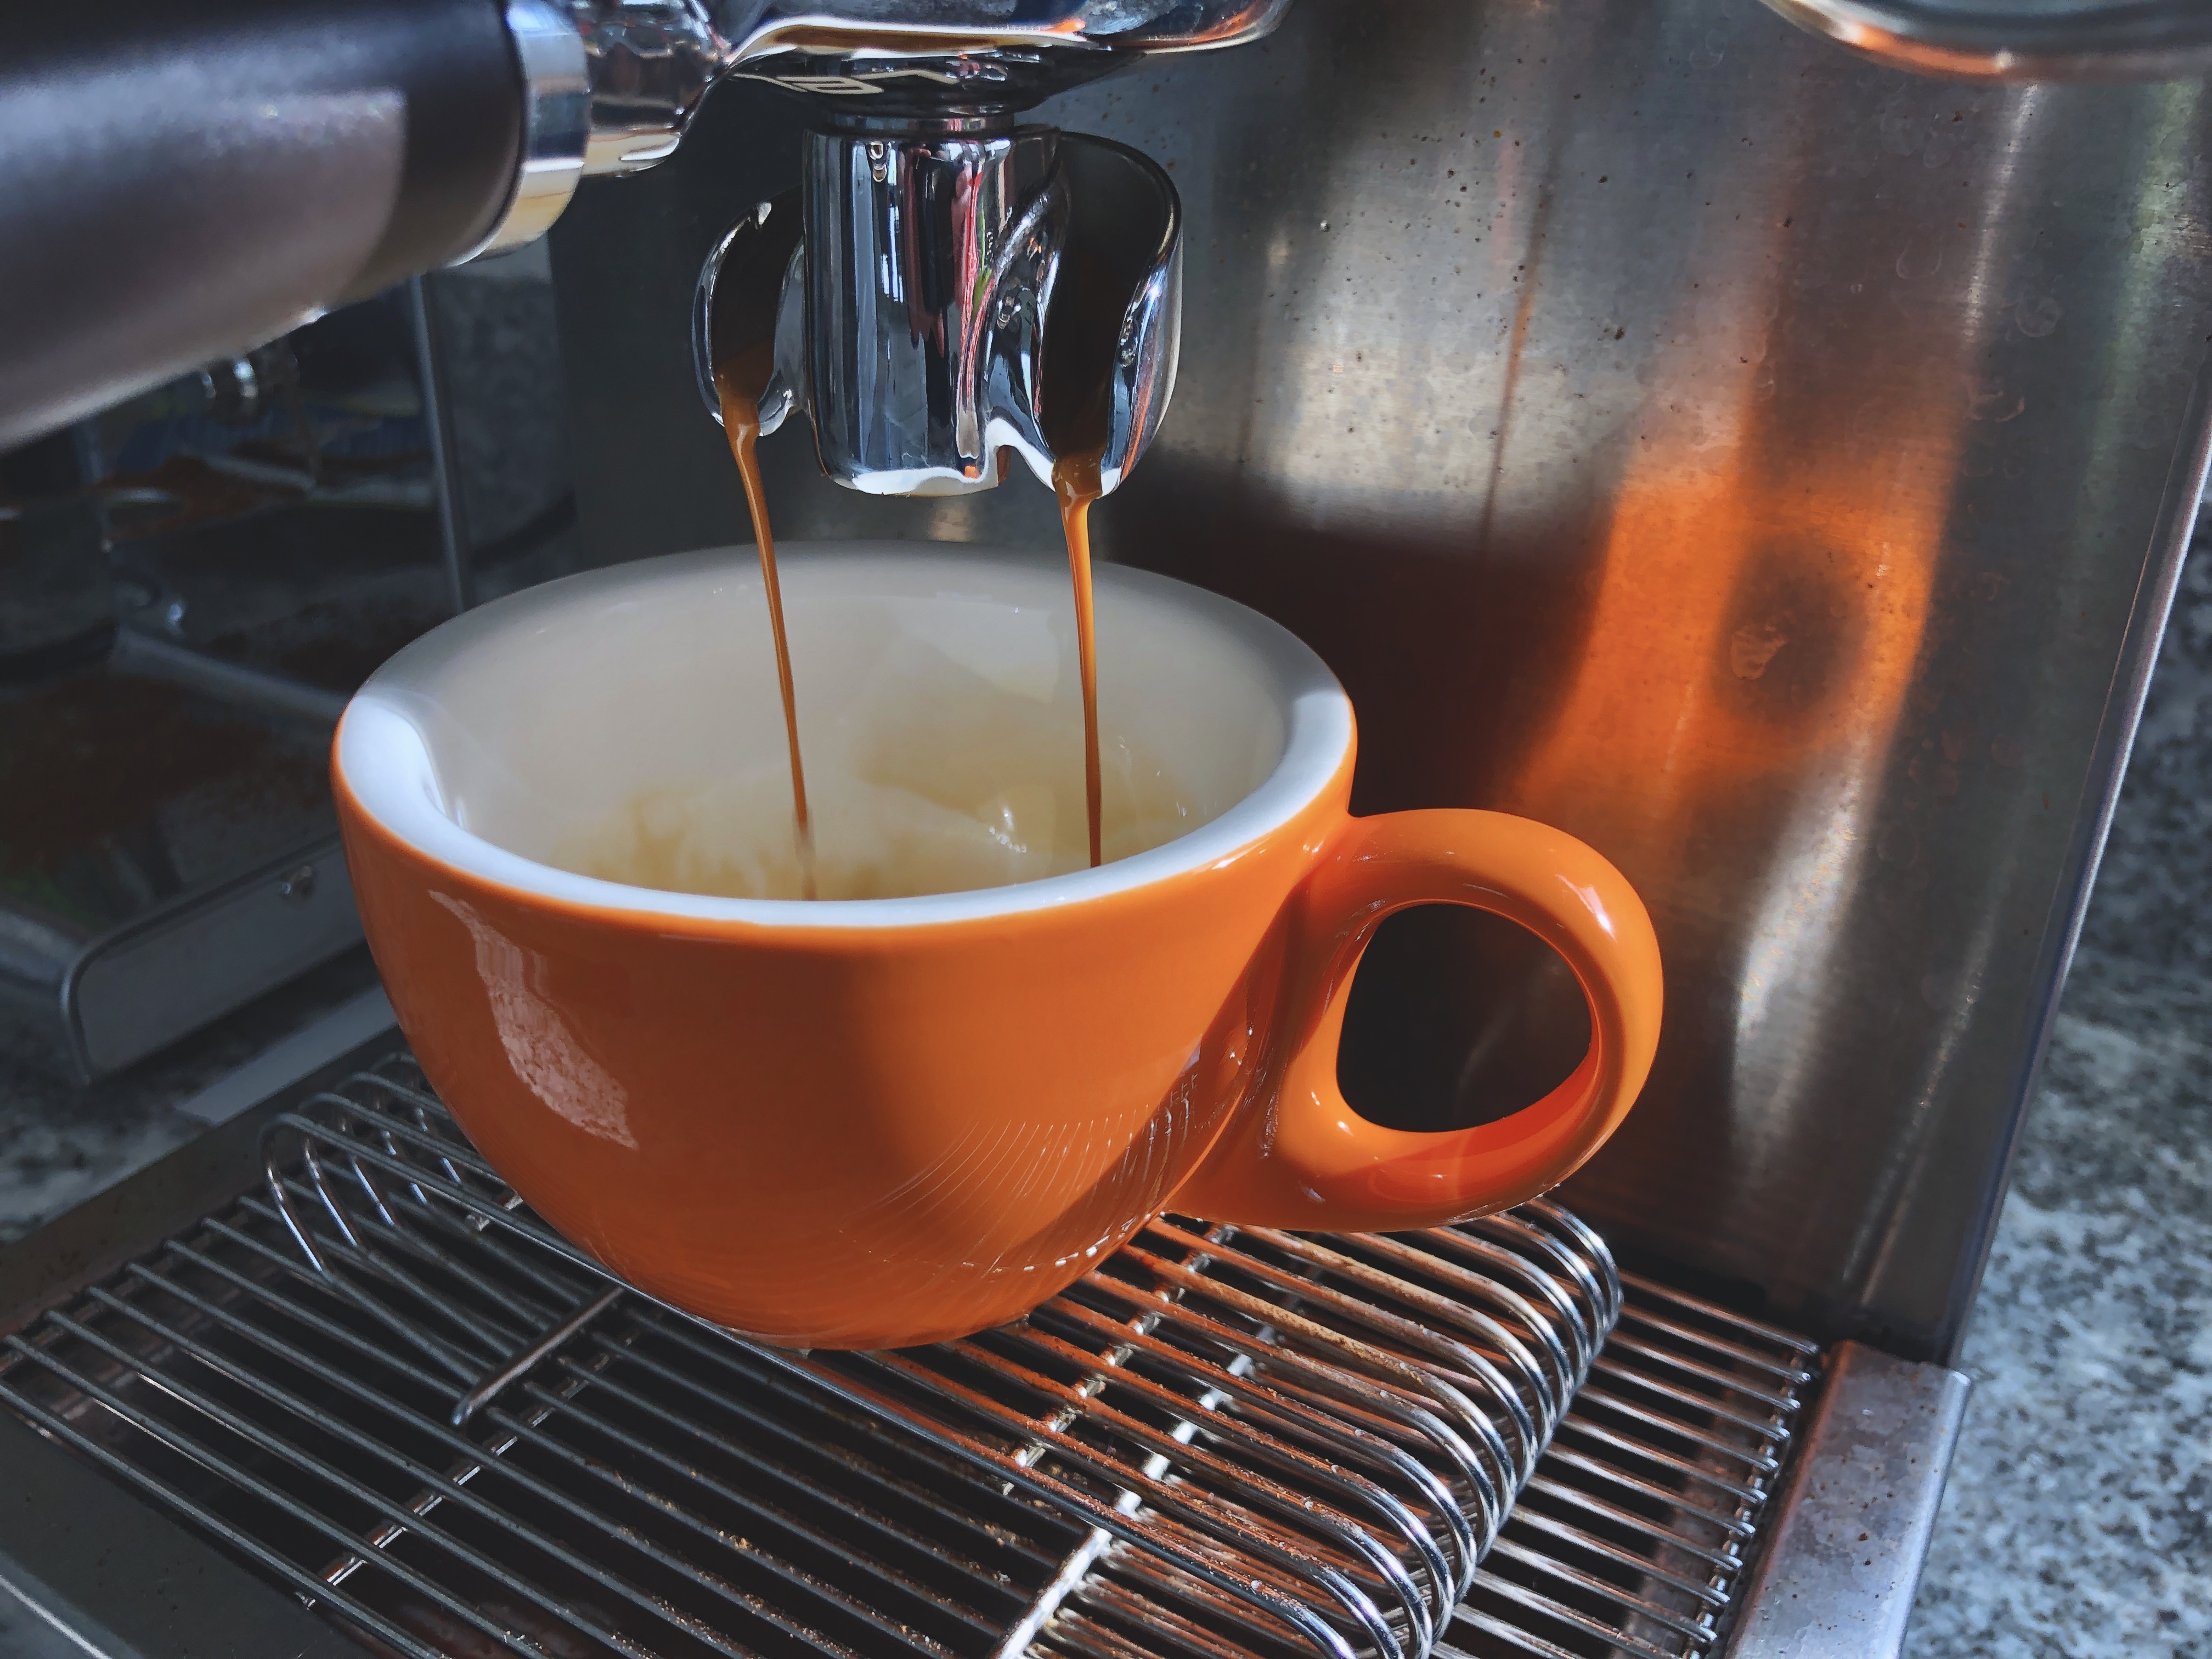 Espresso pouring from a shiny silvery brewhead into a bright orange and white cup